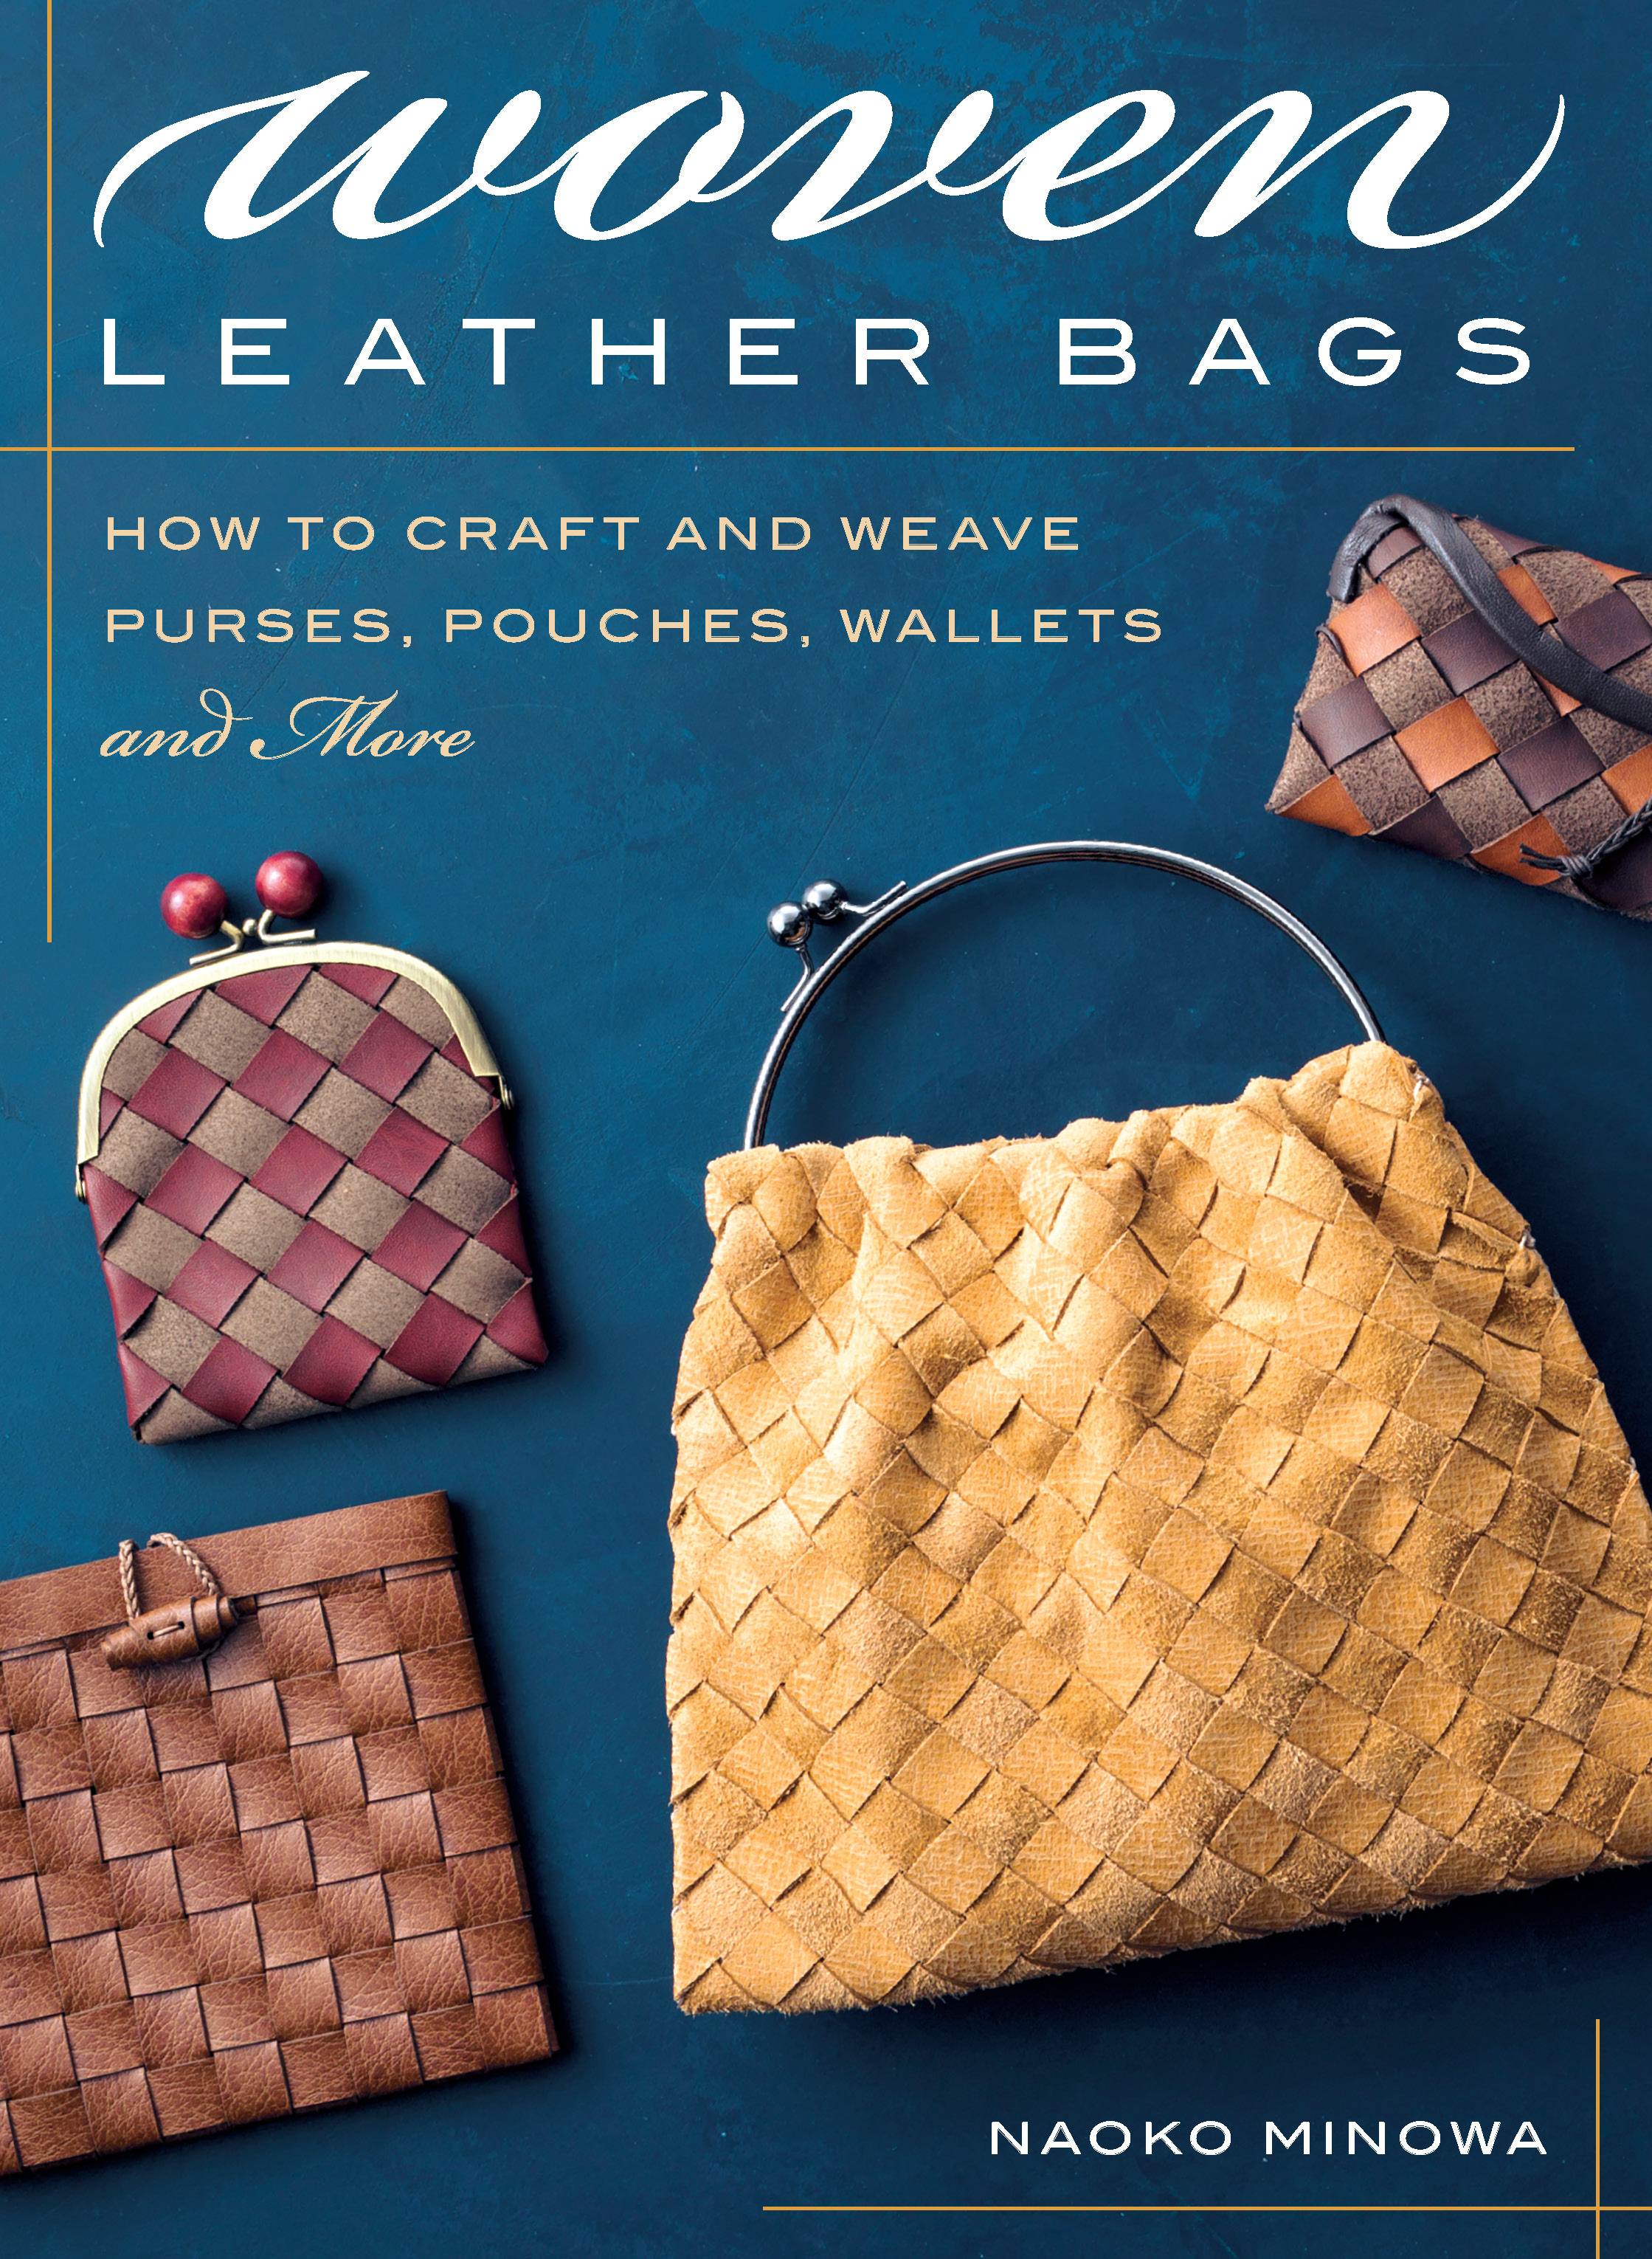 Woven Leather Bags Front Cover.jpg